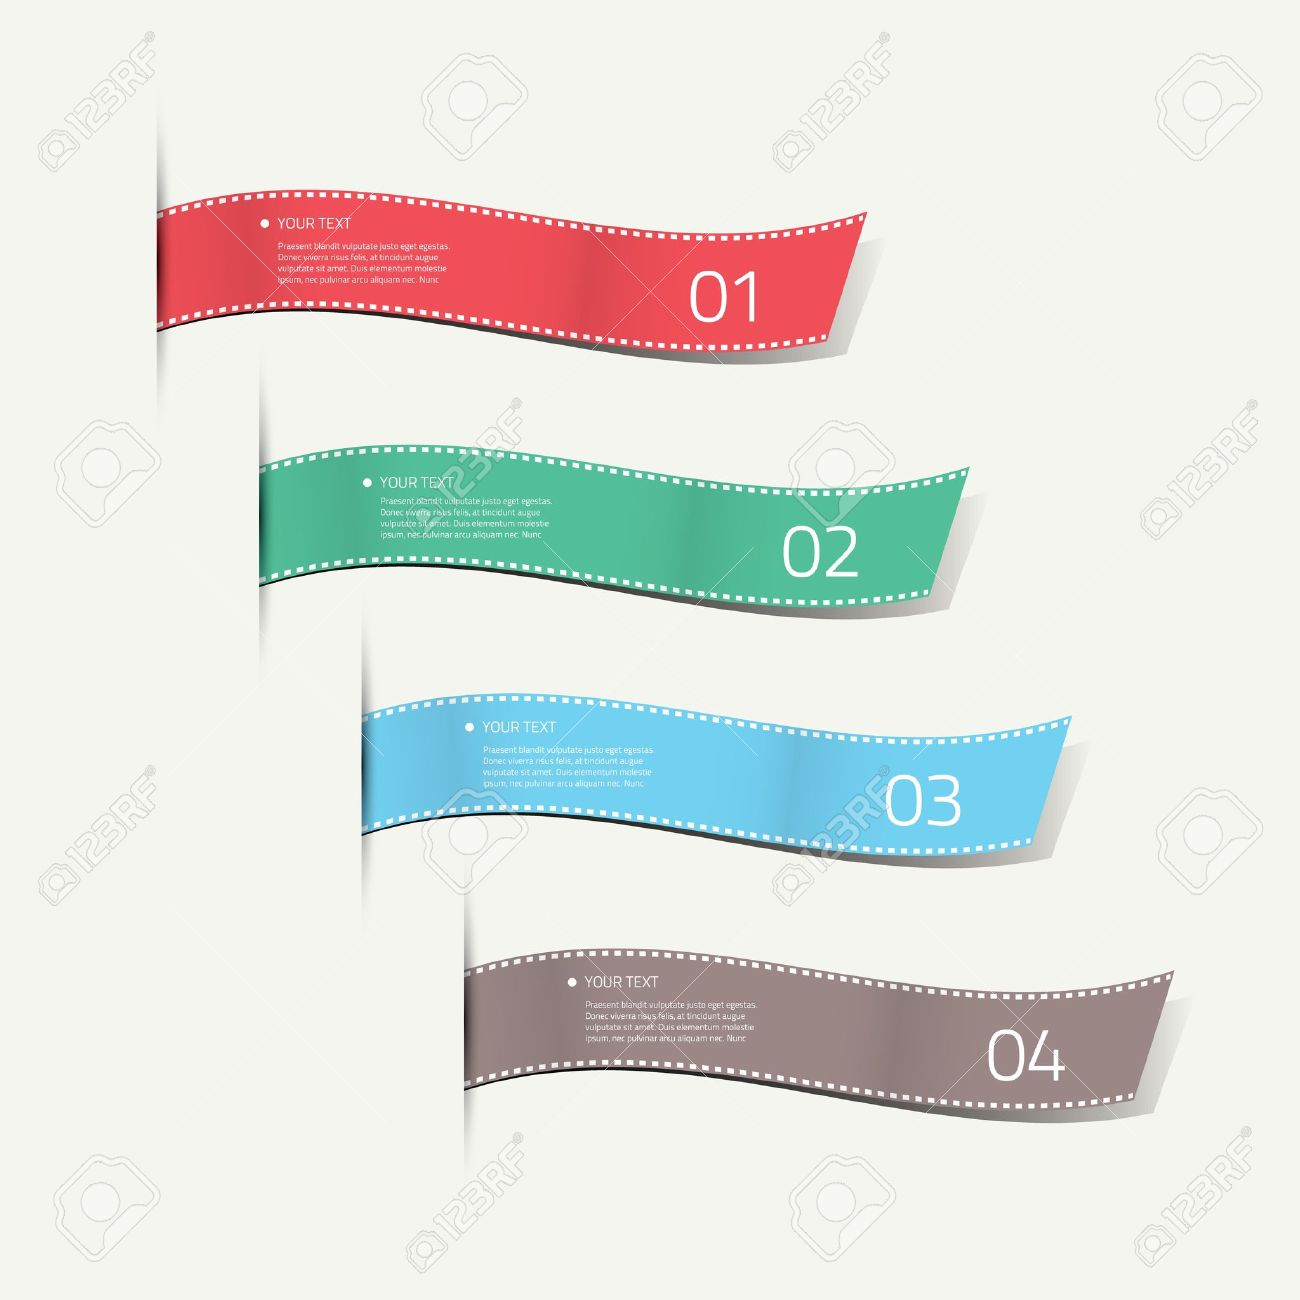 Infographic silk labels decorative Stock Vector - 21999516